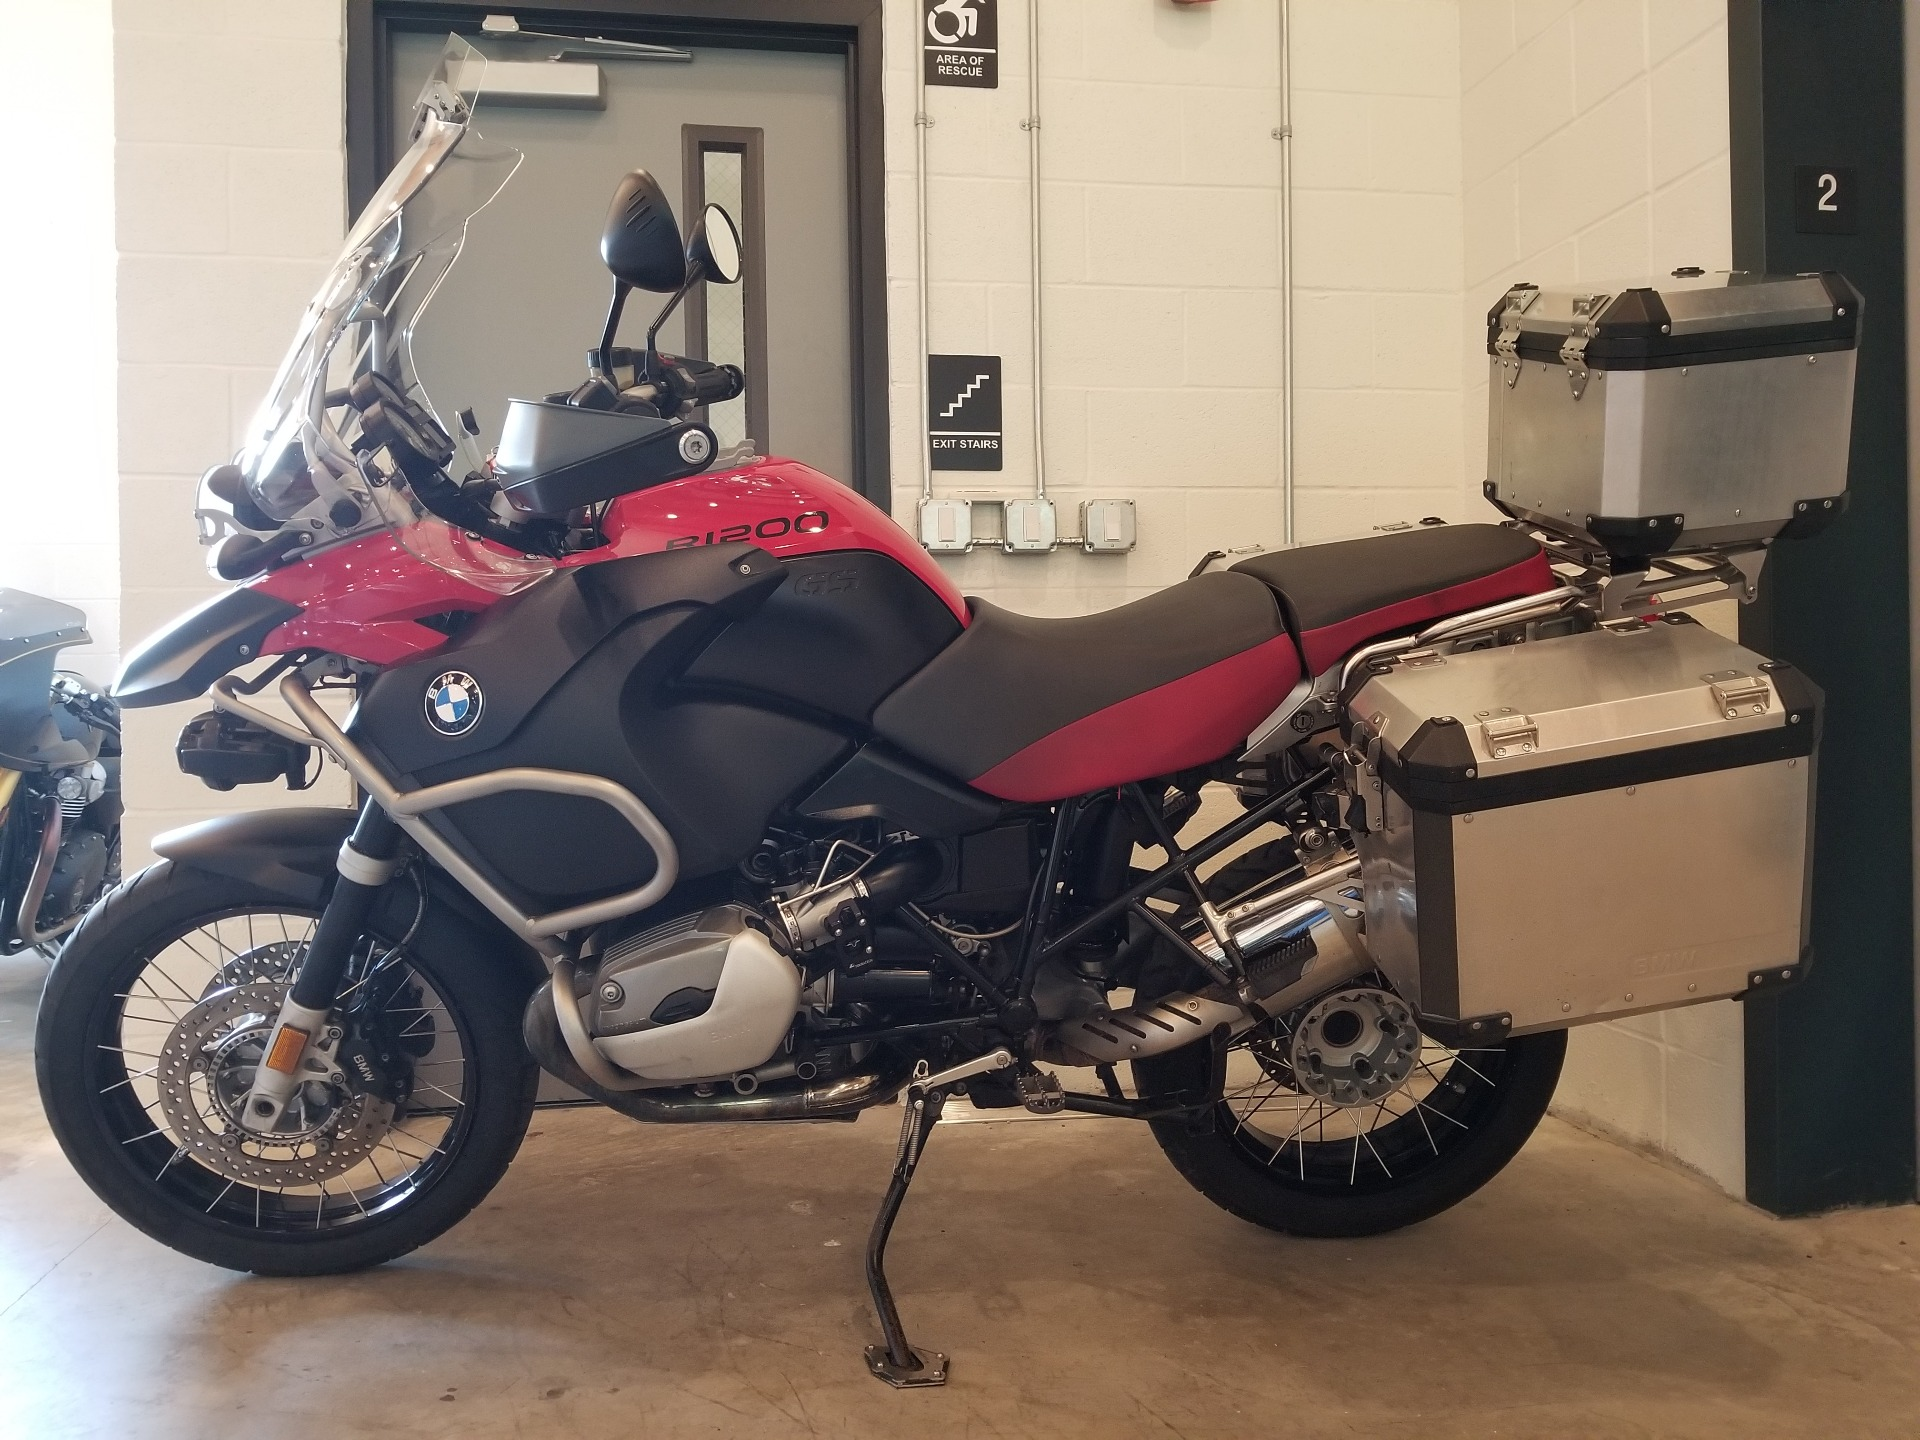 2009 BMW R 1200 GS Adventure in Port Clinton, Pennsylvania - Photo 2